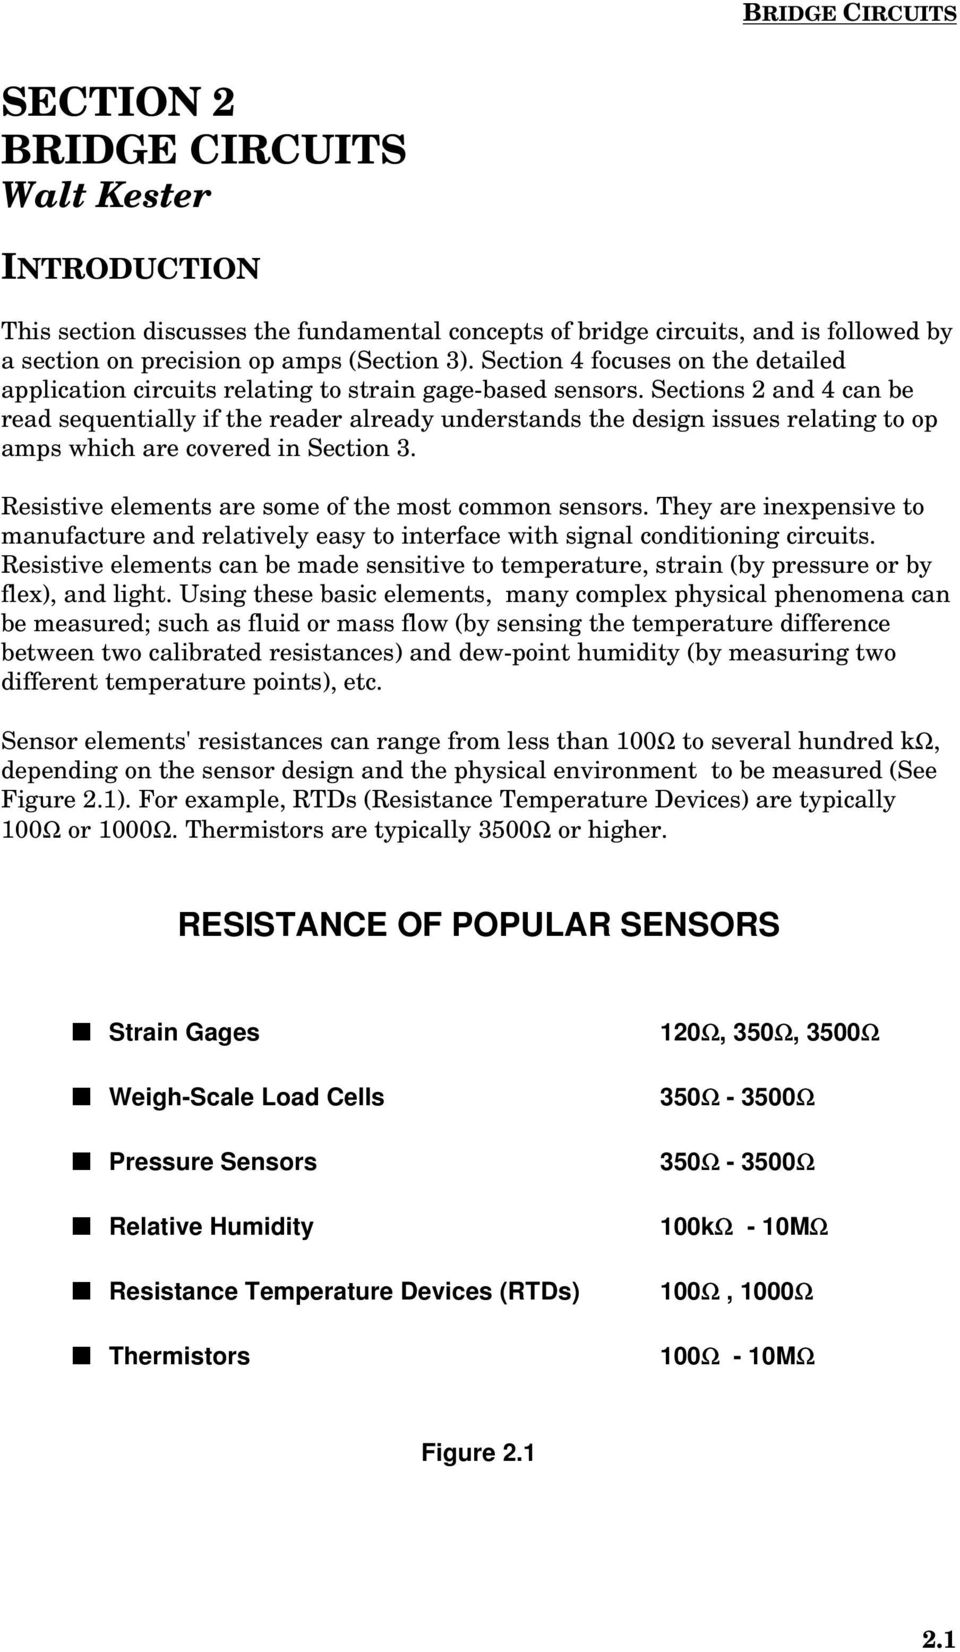 Practical Design Techniques For Sensor Signal Conditioning Pdf Photodiodes Ic Sections 2 And 4 Can Be Read Sequentially If The Reader Already Understands Issues